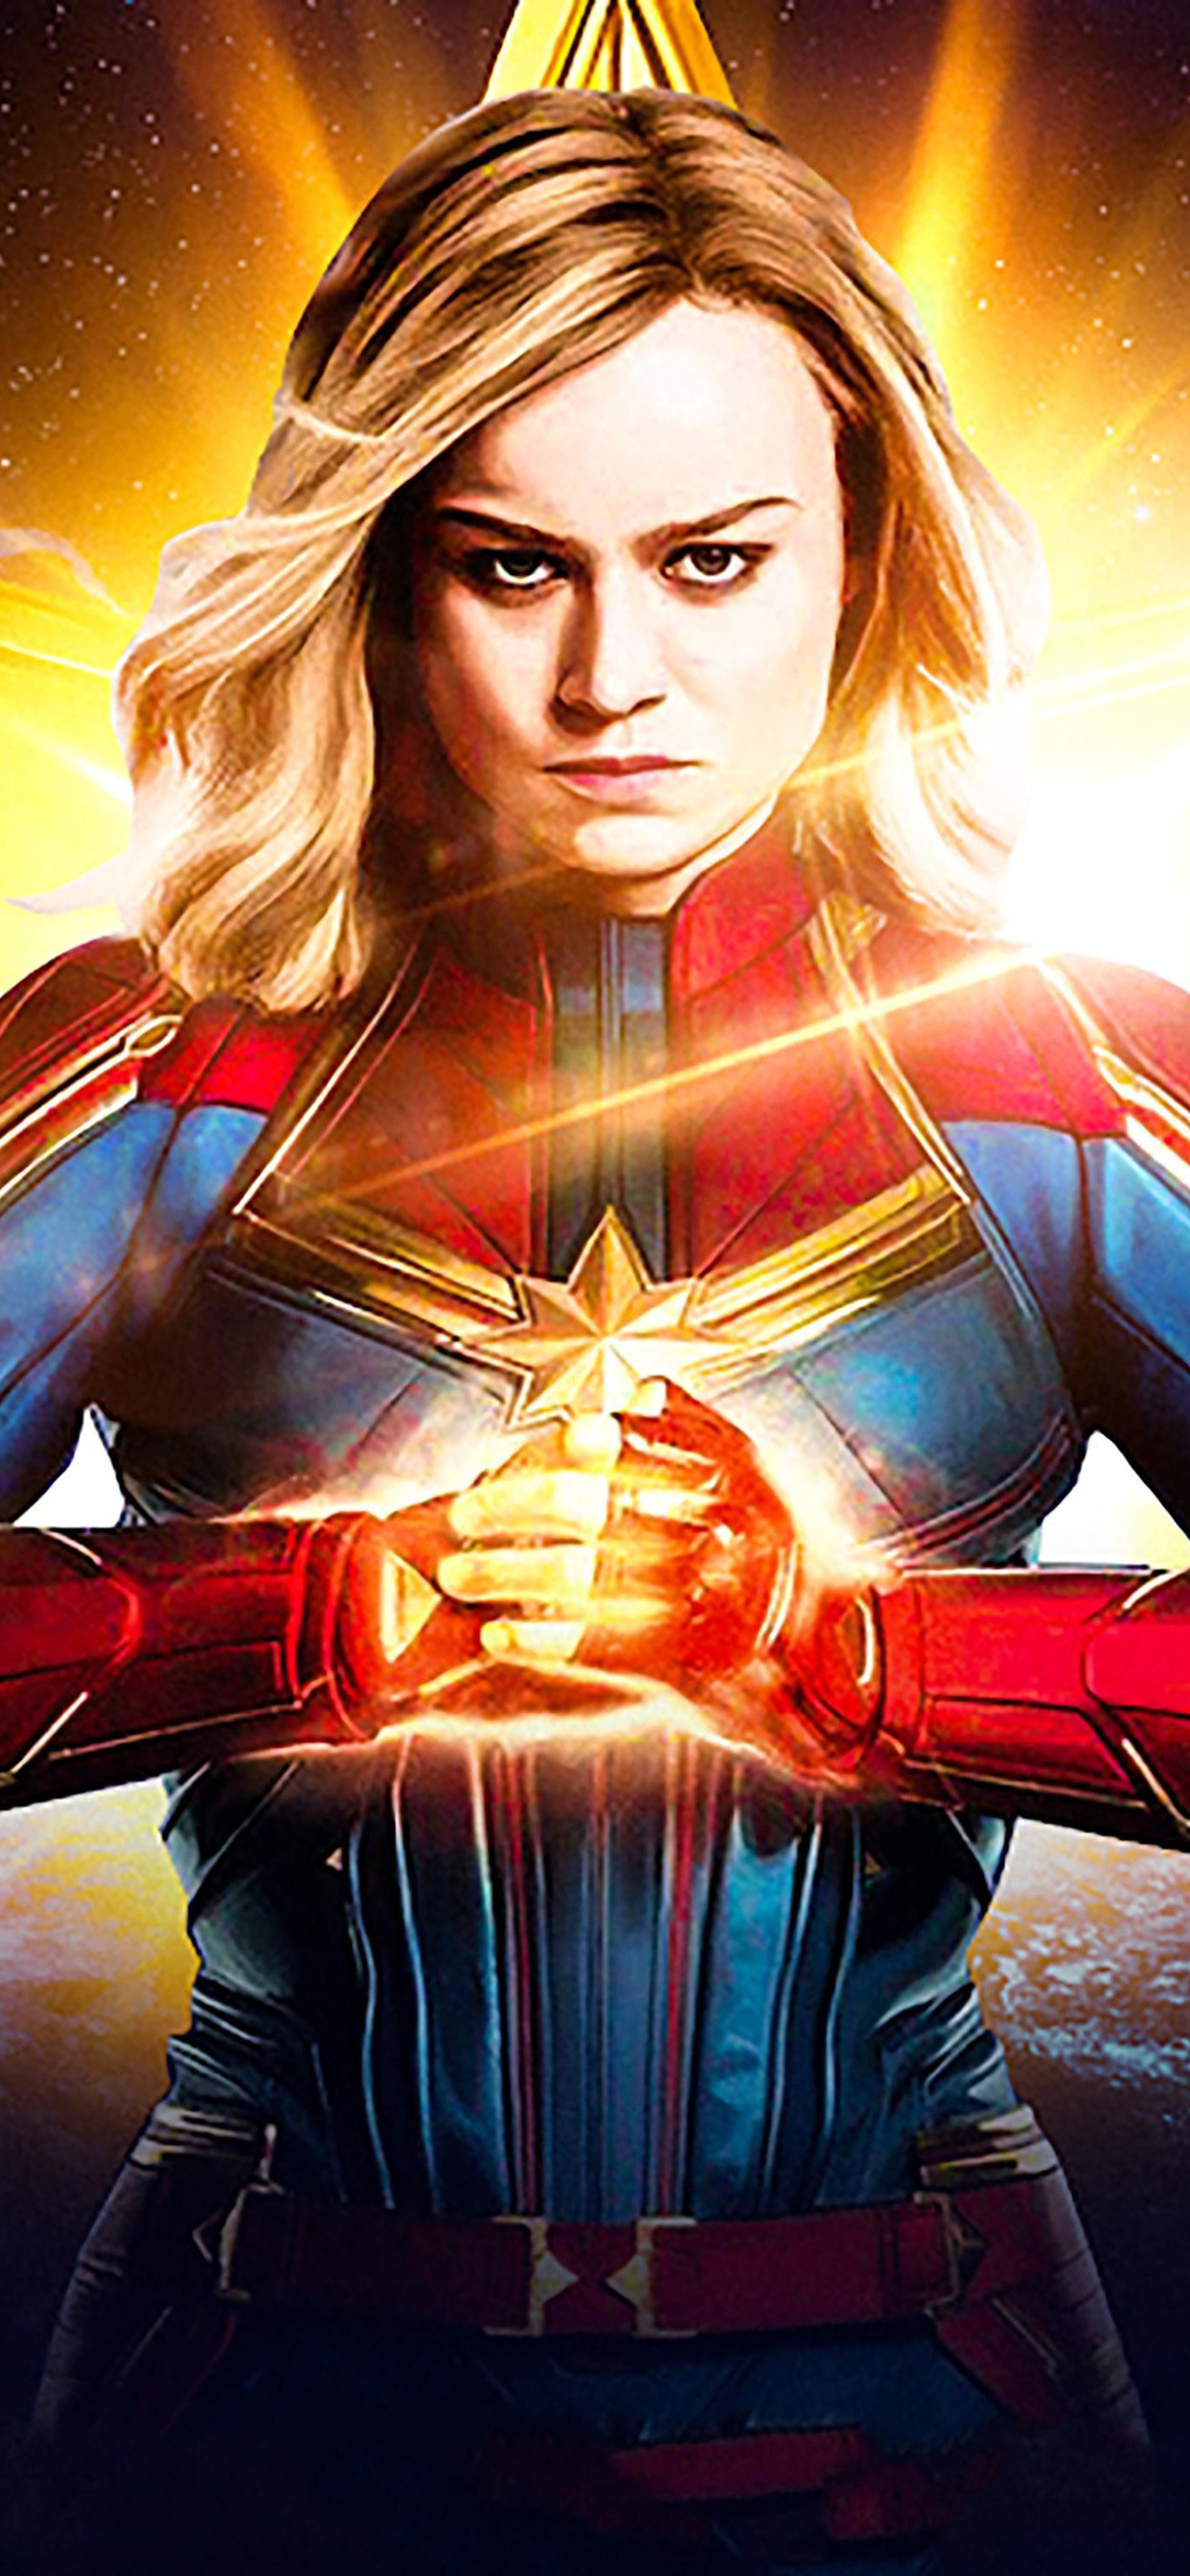 1242x2688 2019 Captain Marvel Iphone Xs Max Hd 4k Wallpapers Images